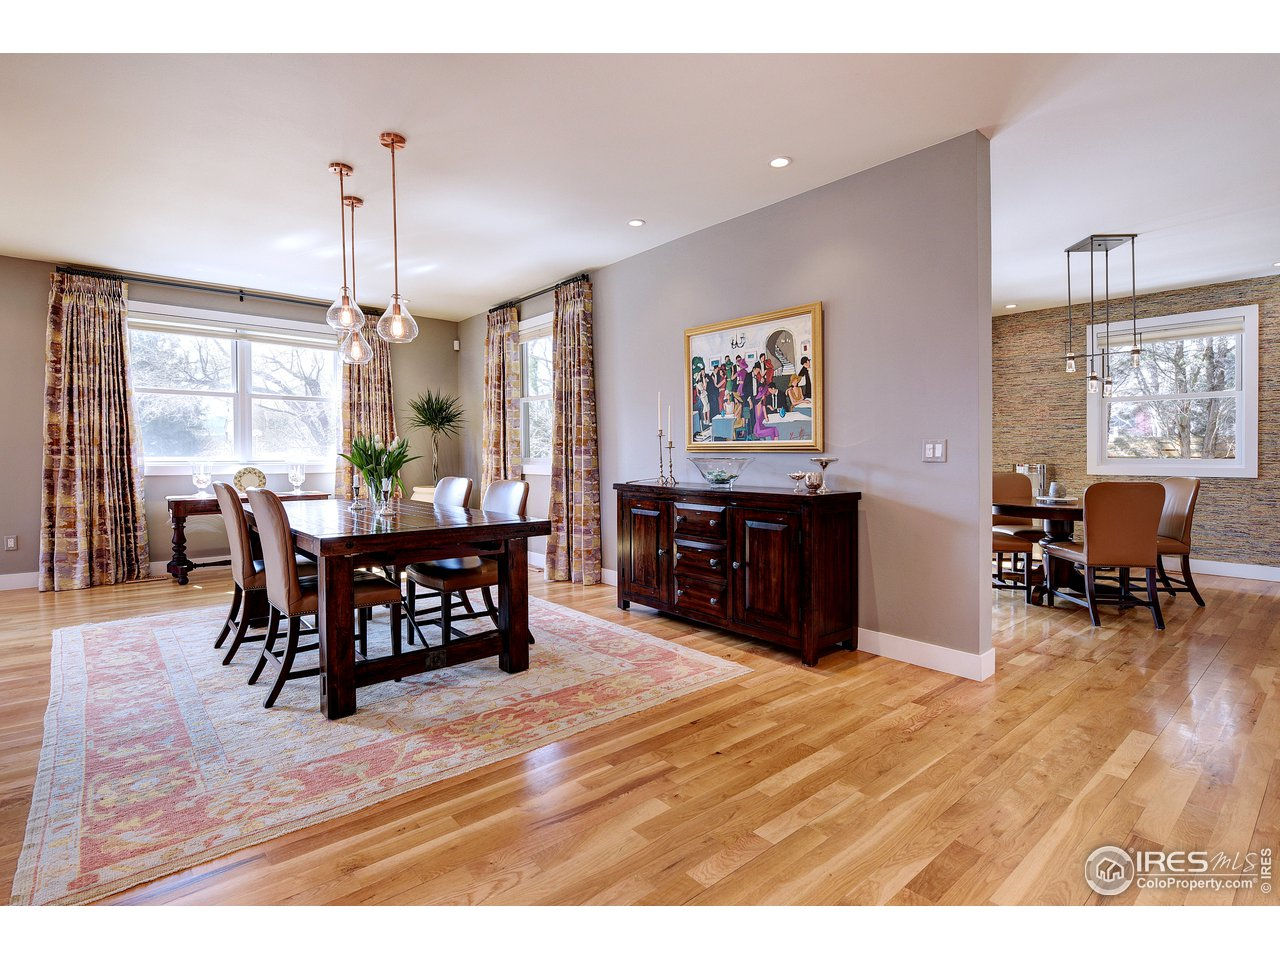 Hardwood oak flooring throughout main level